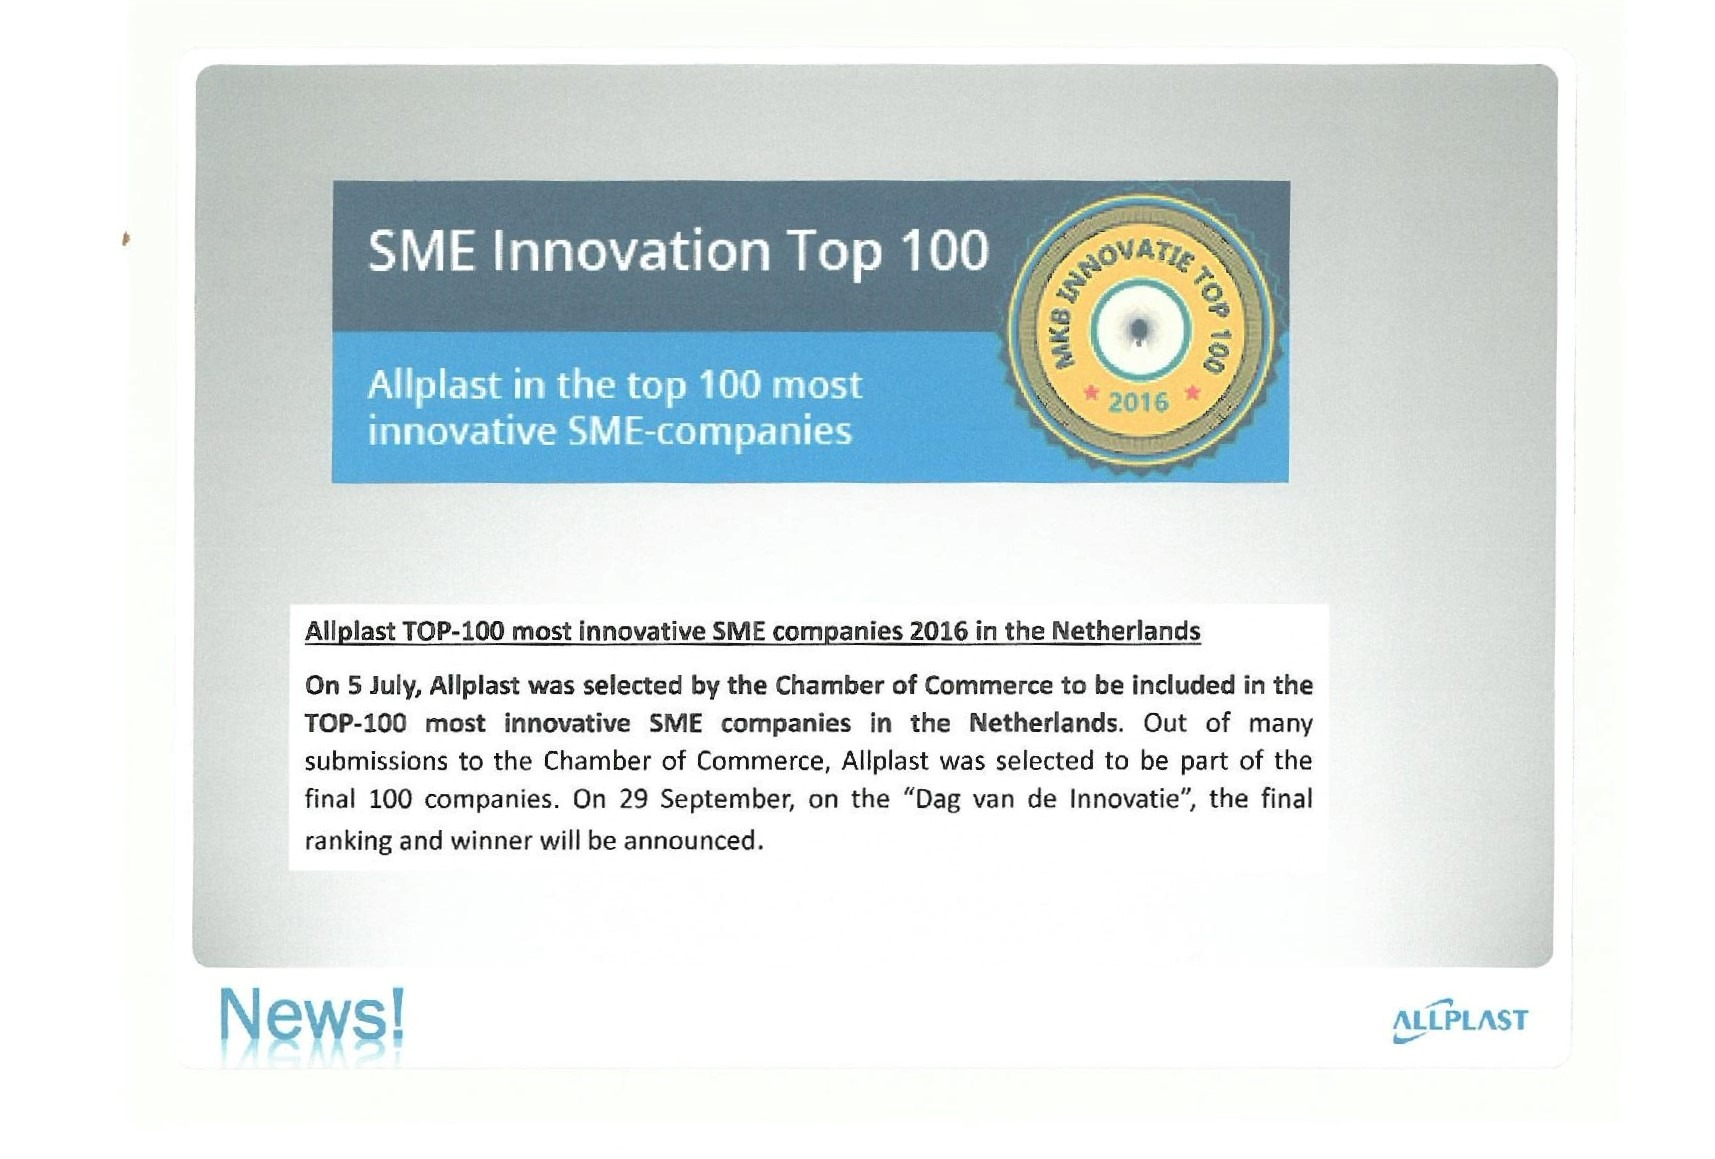 Allplast TOP-100 most innovative SME Companies 2016 in the Netherlands